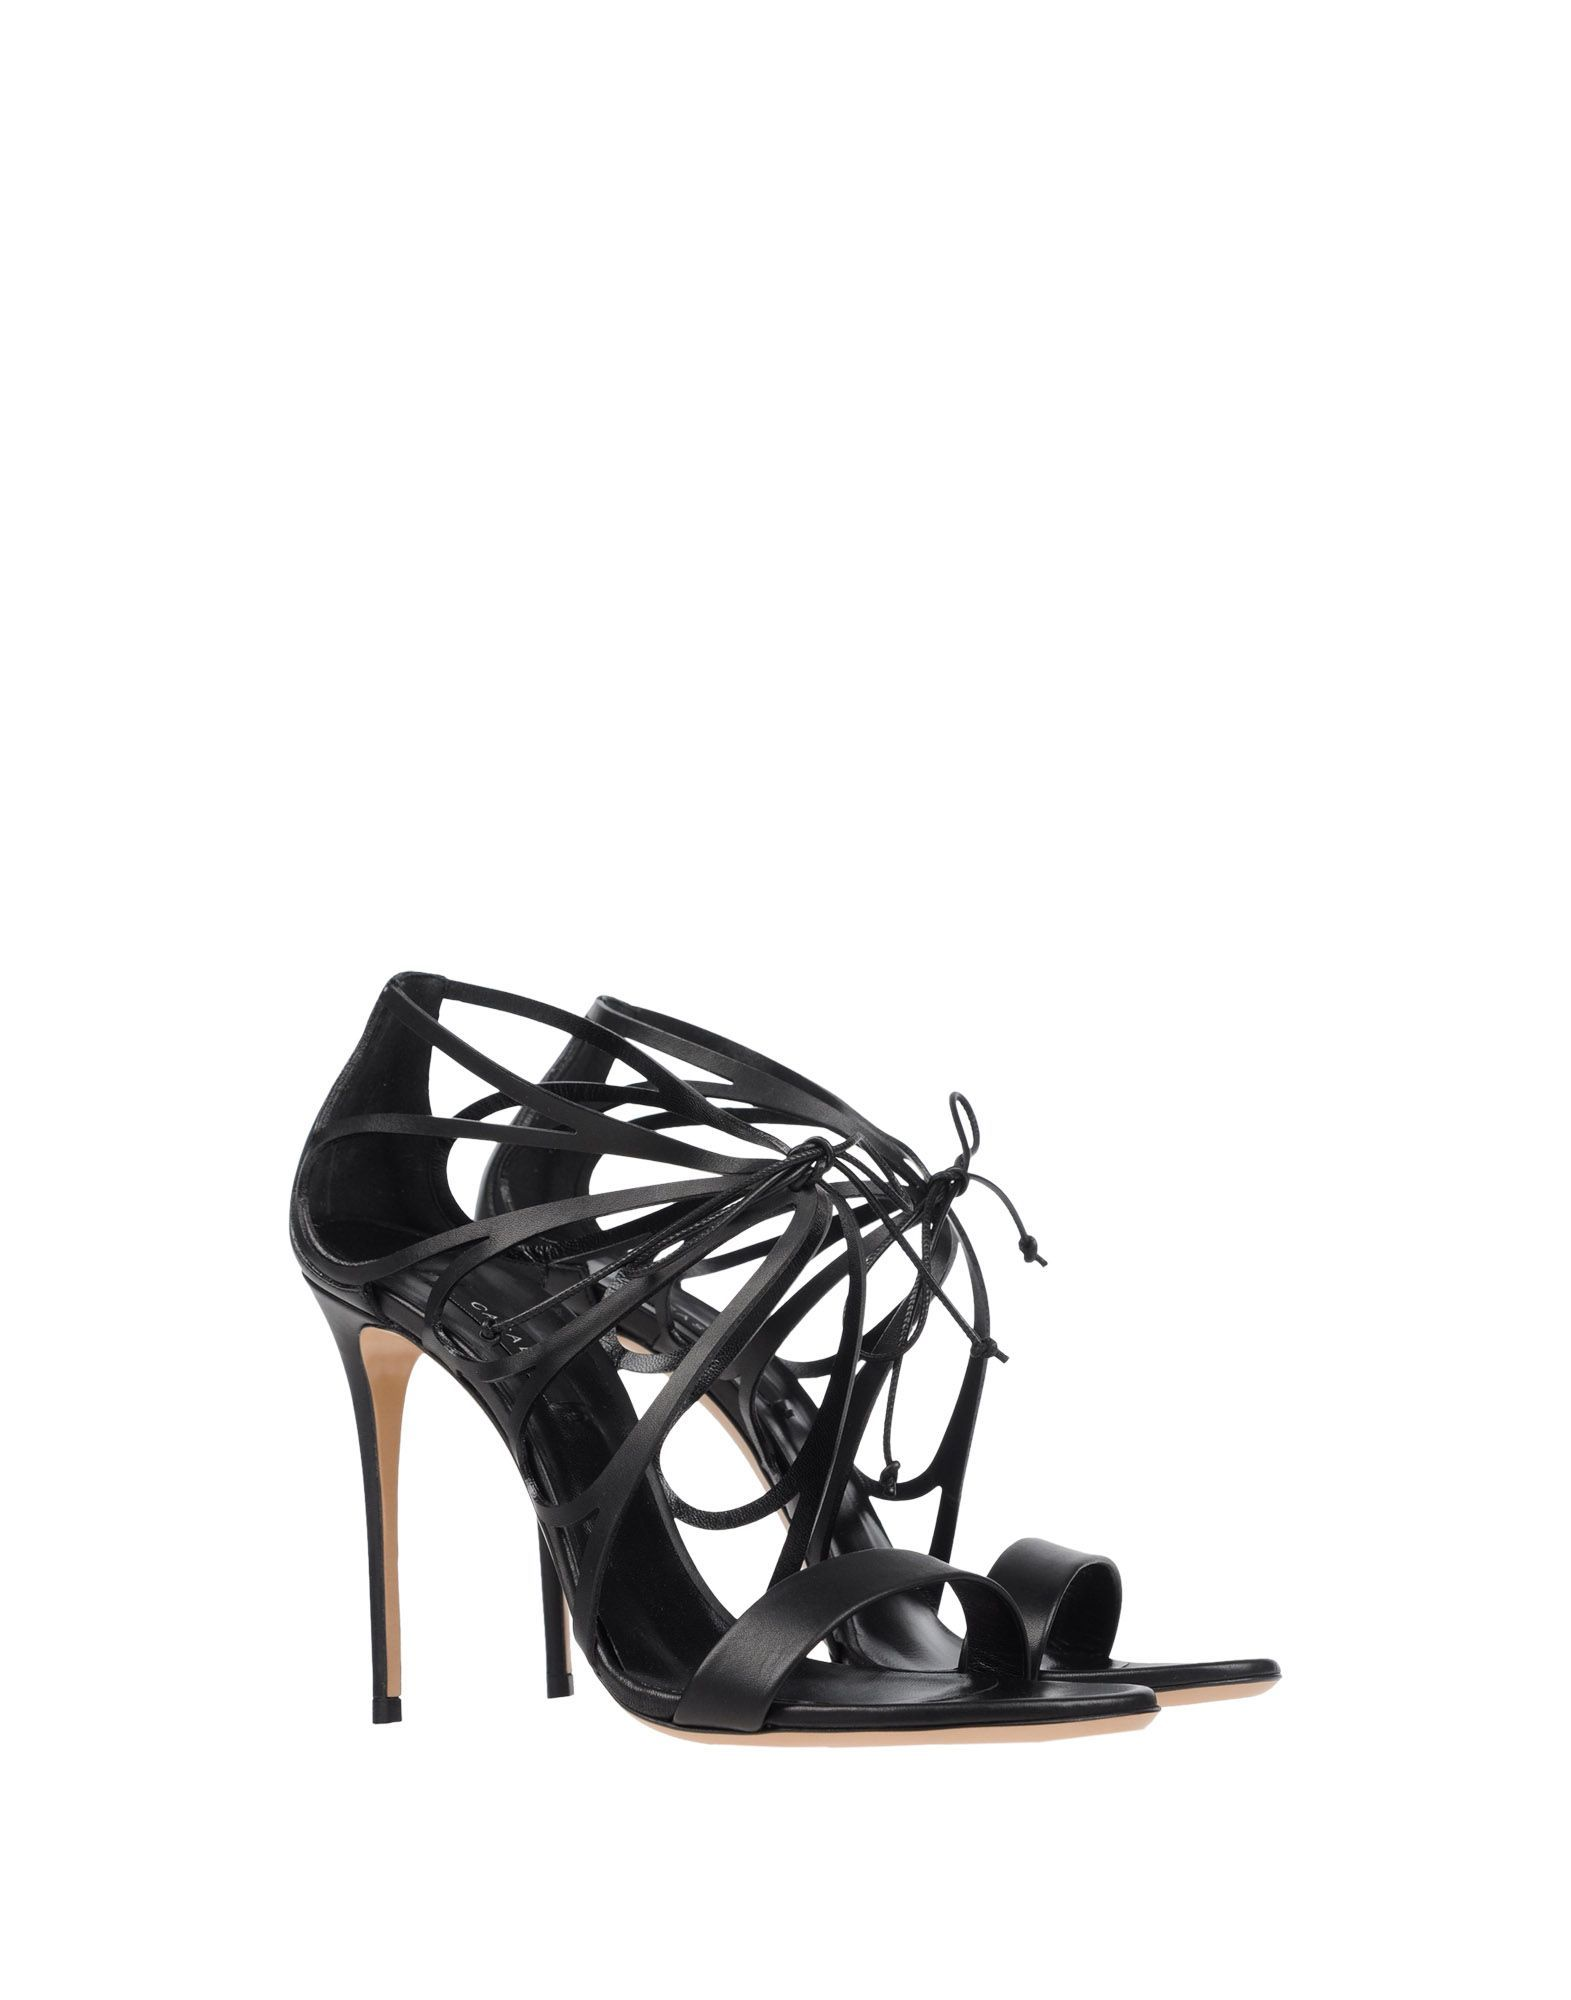 39afcb1b751 Casadei Sandals - Women Casadei Sandals online on YOOX United States -  11116615JQ